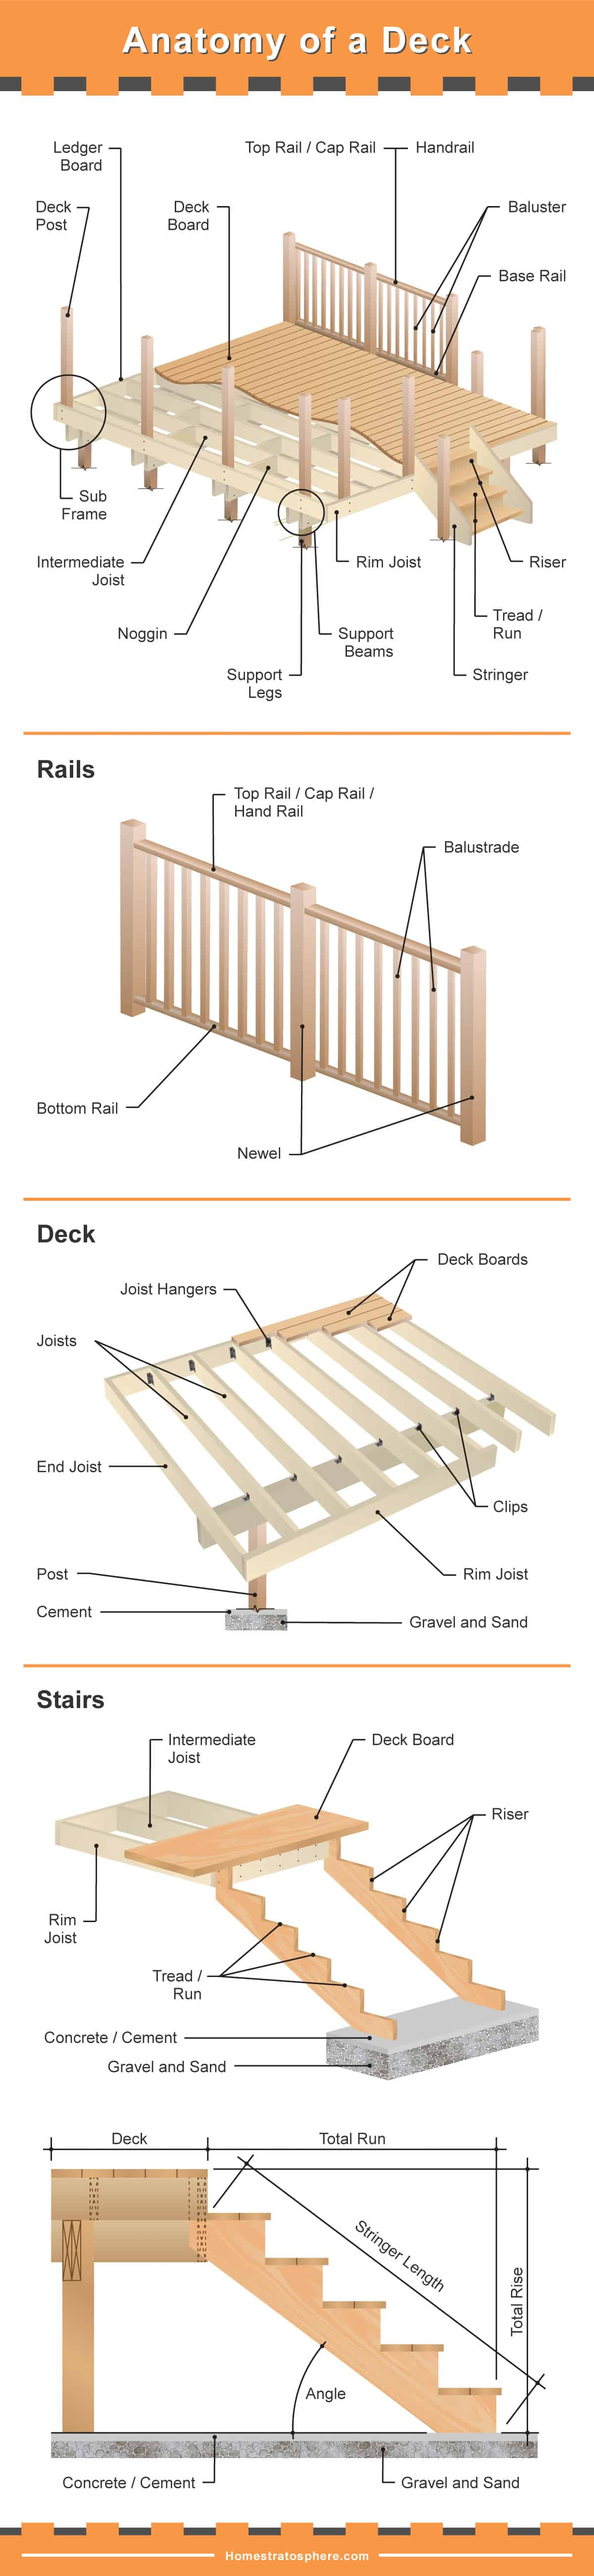 Parts of a deck - detailed diagram of the foundation, railing, deck and deck stairs.